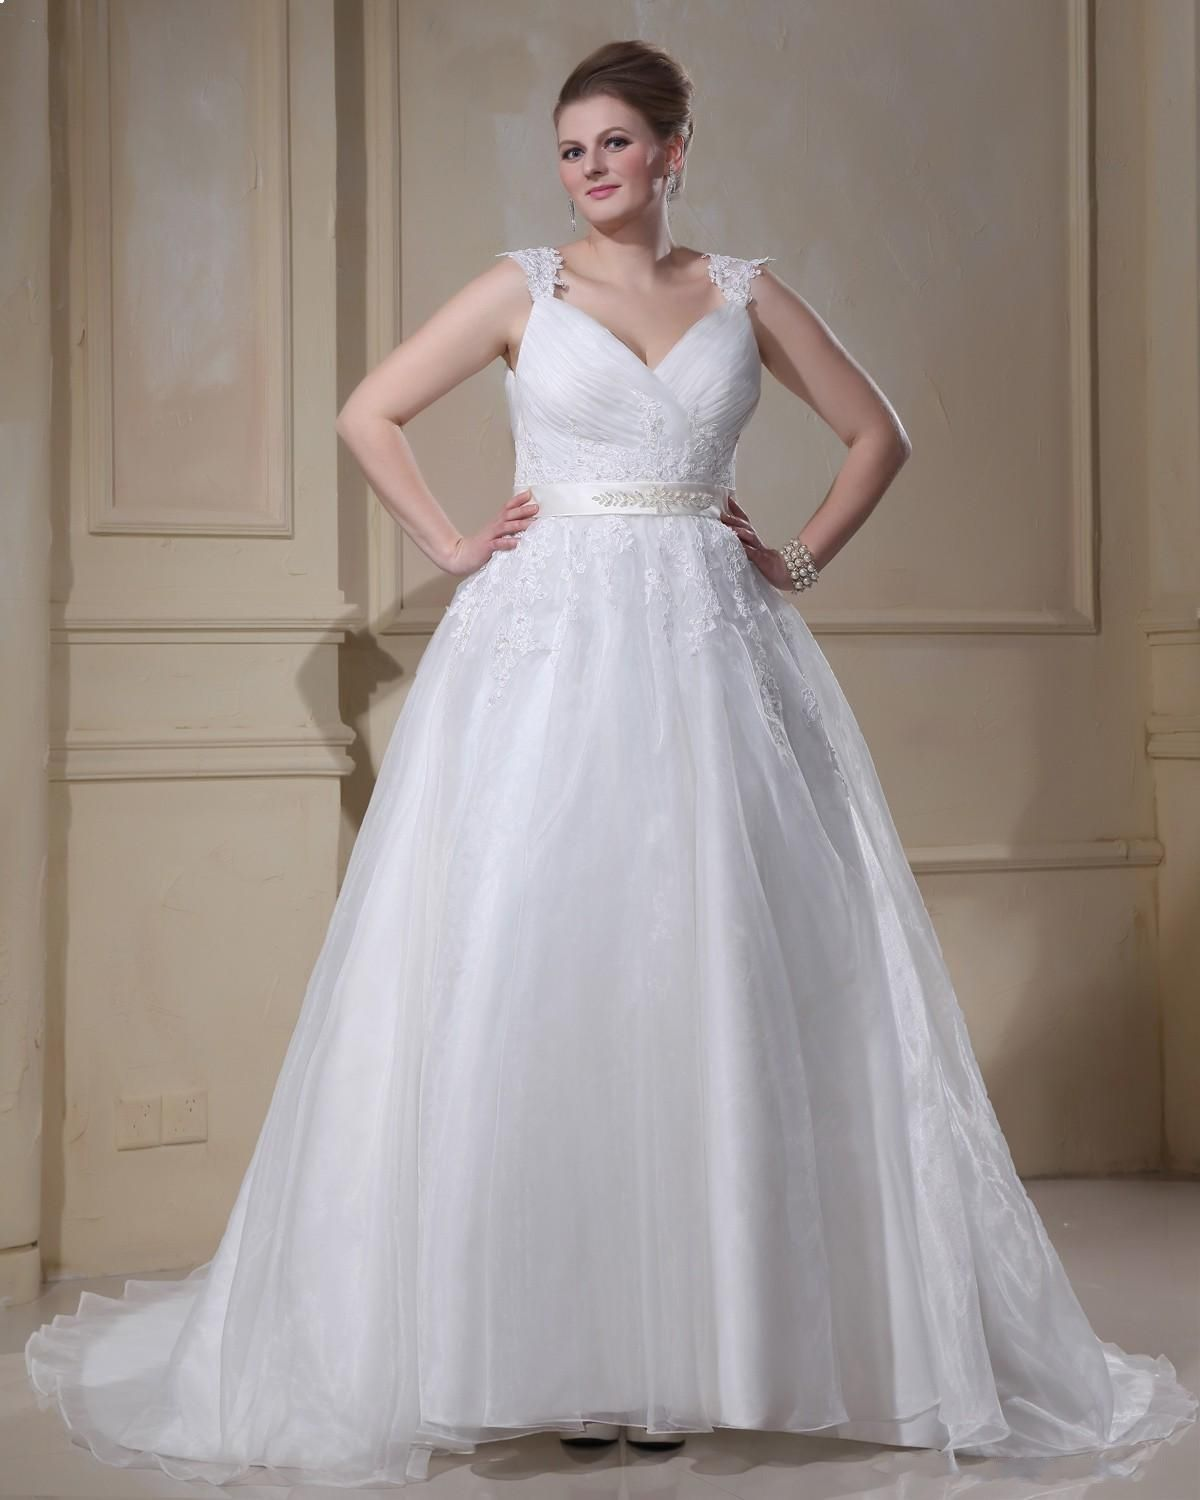 Unique plus size wedding dresses photo wedding dresses plus